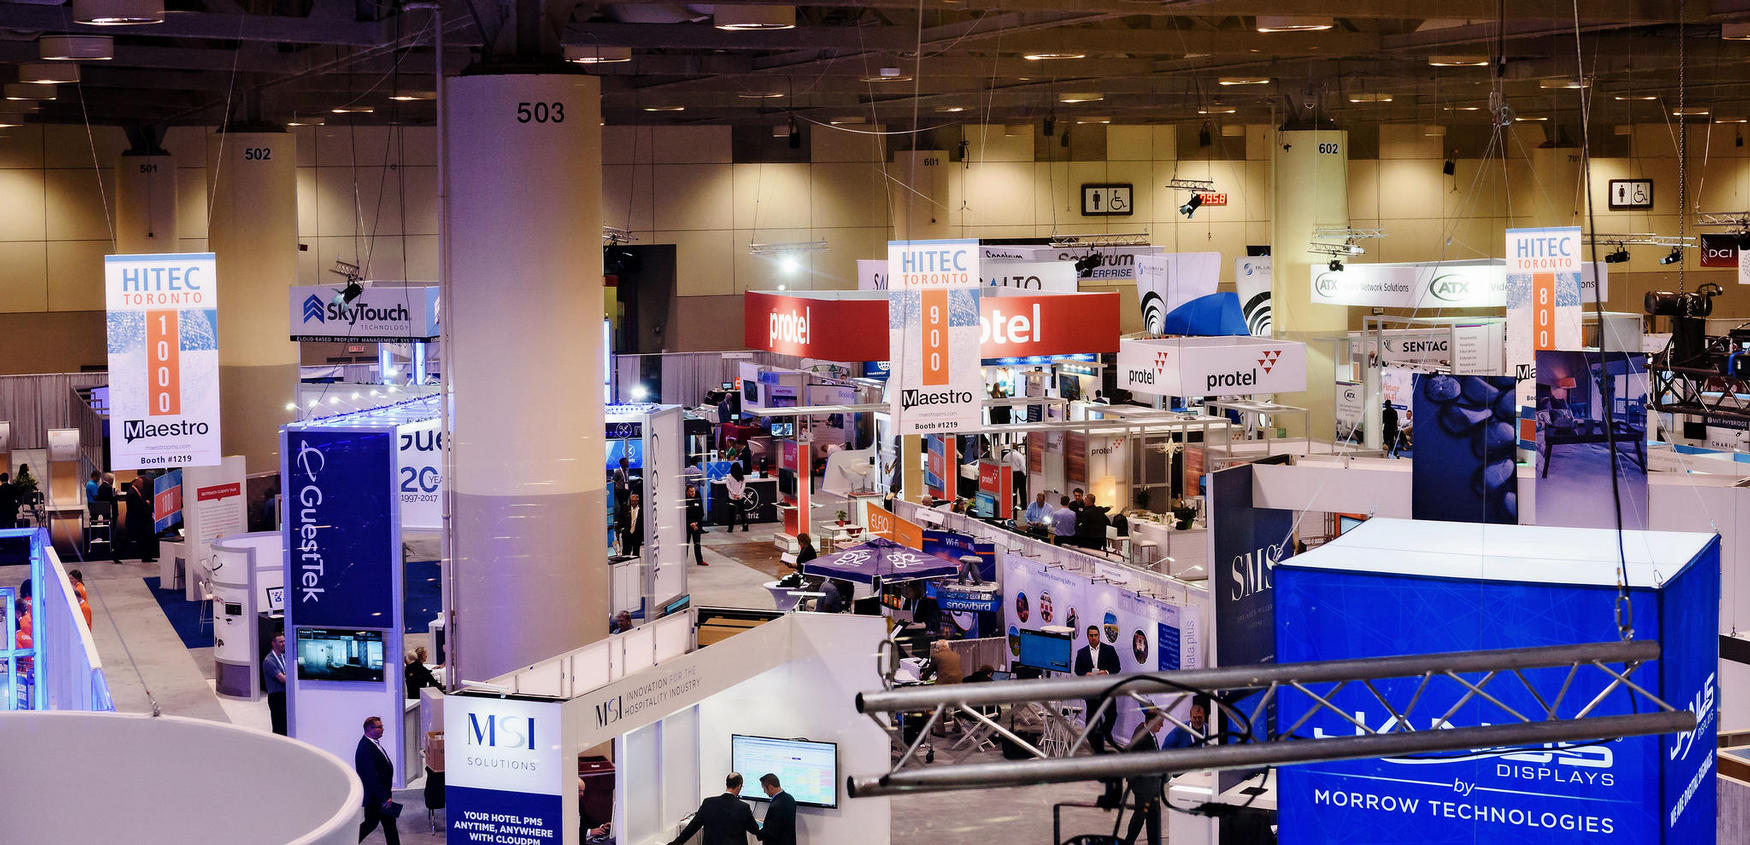 Trade Show Booth Exhibitors : Hospitality trade show exhibitor information hftp